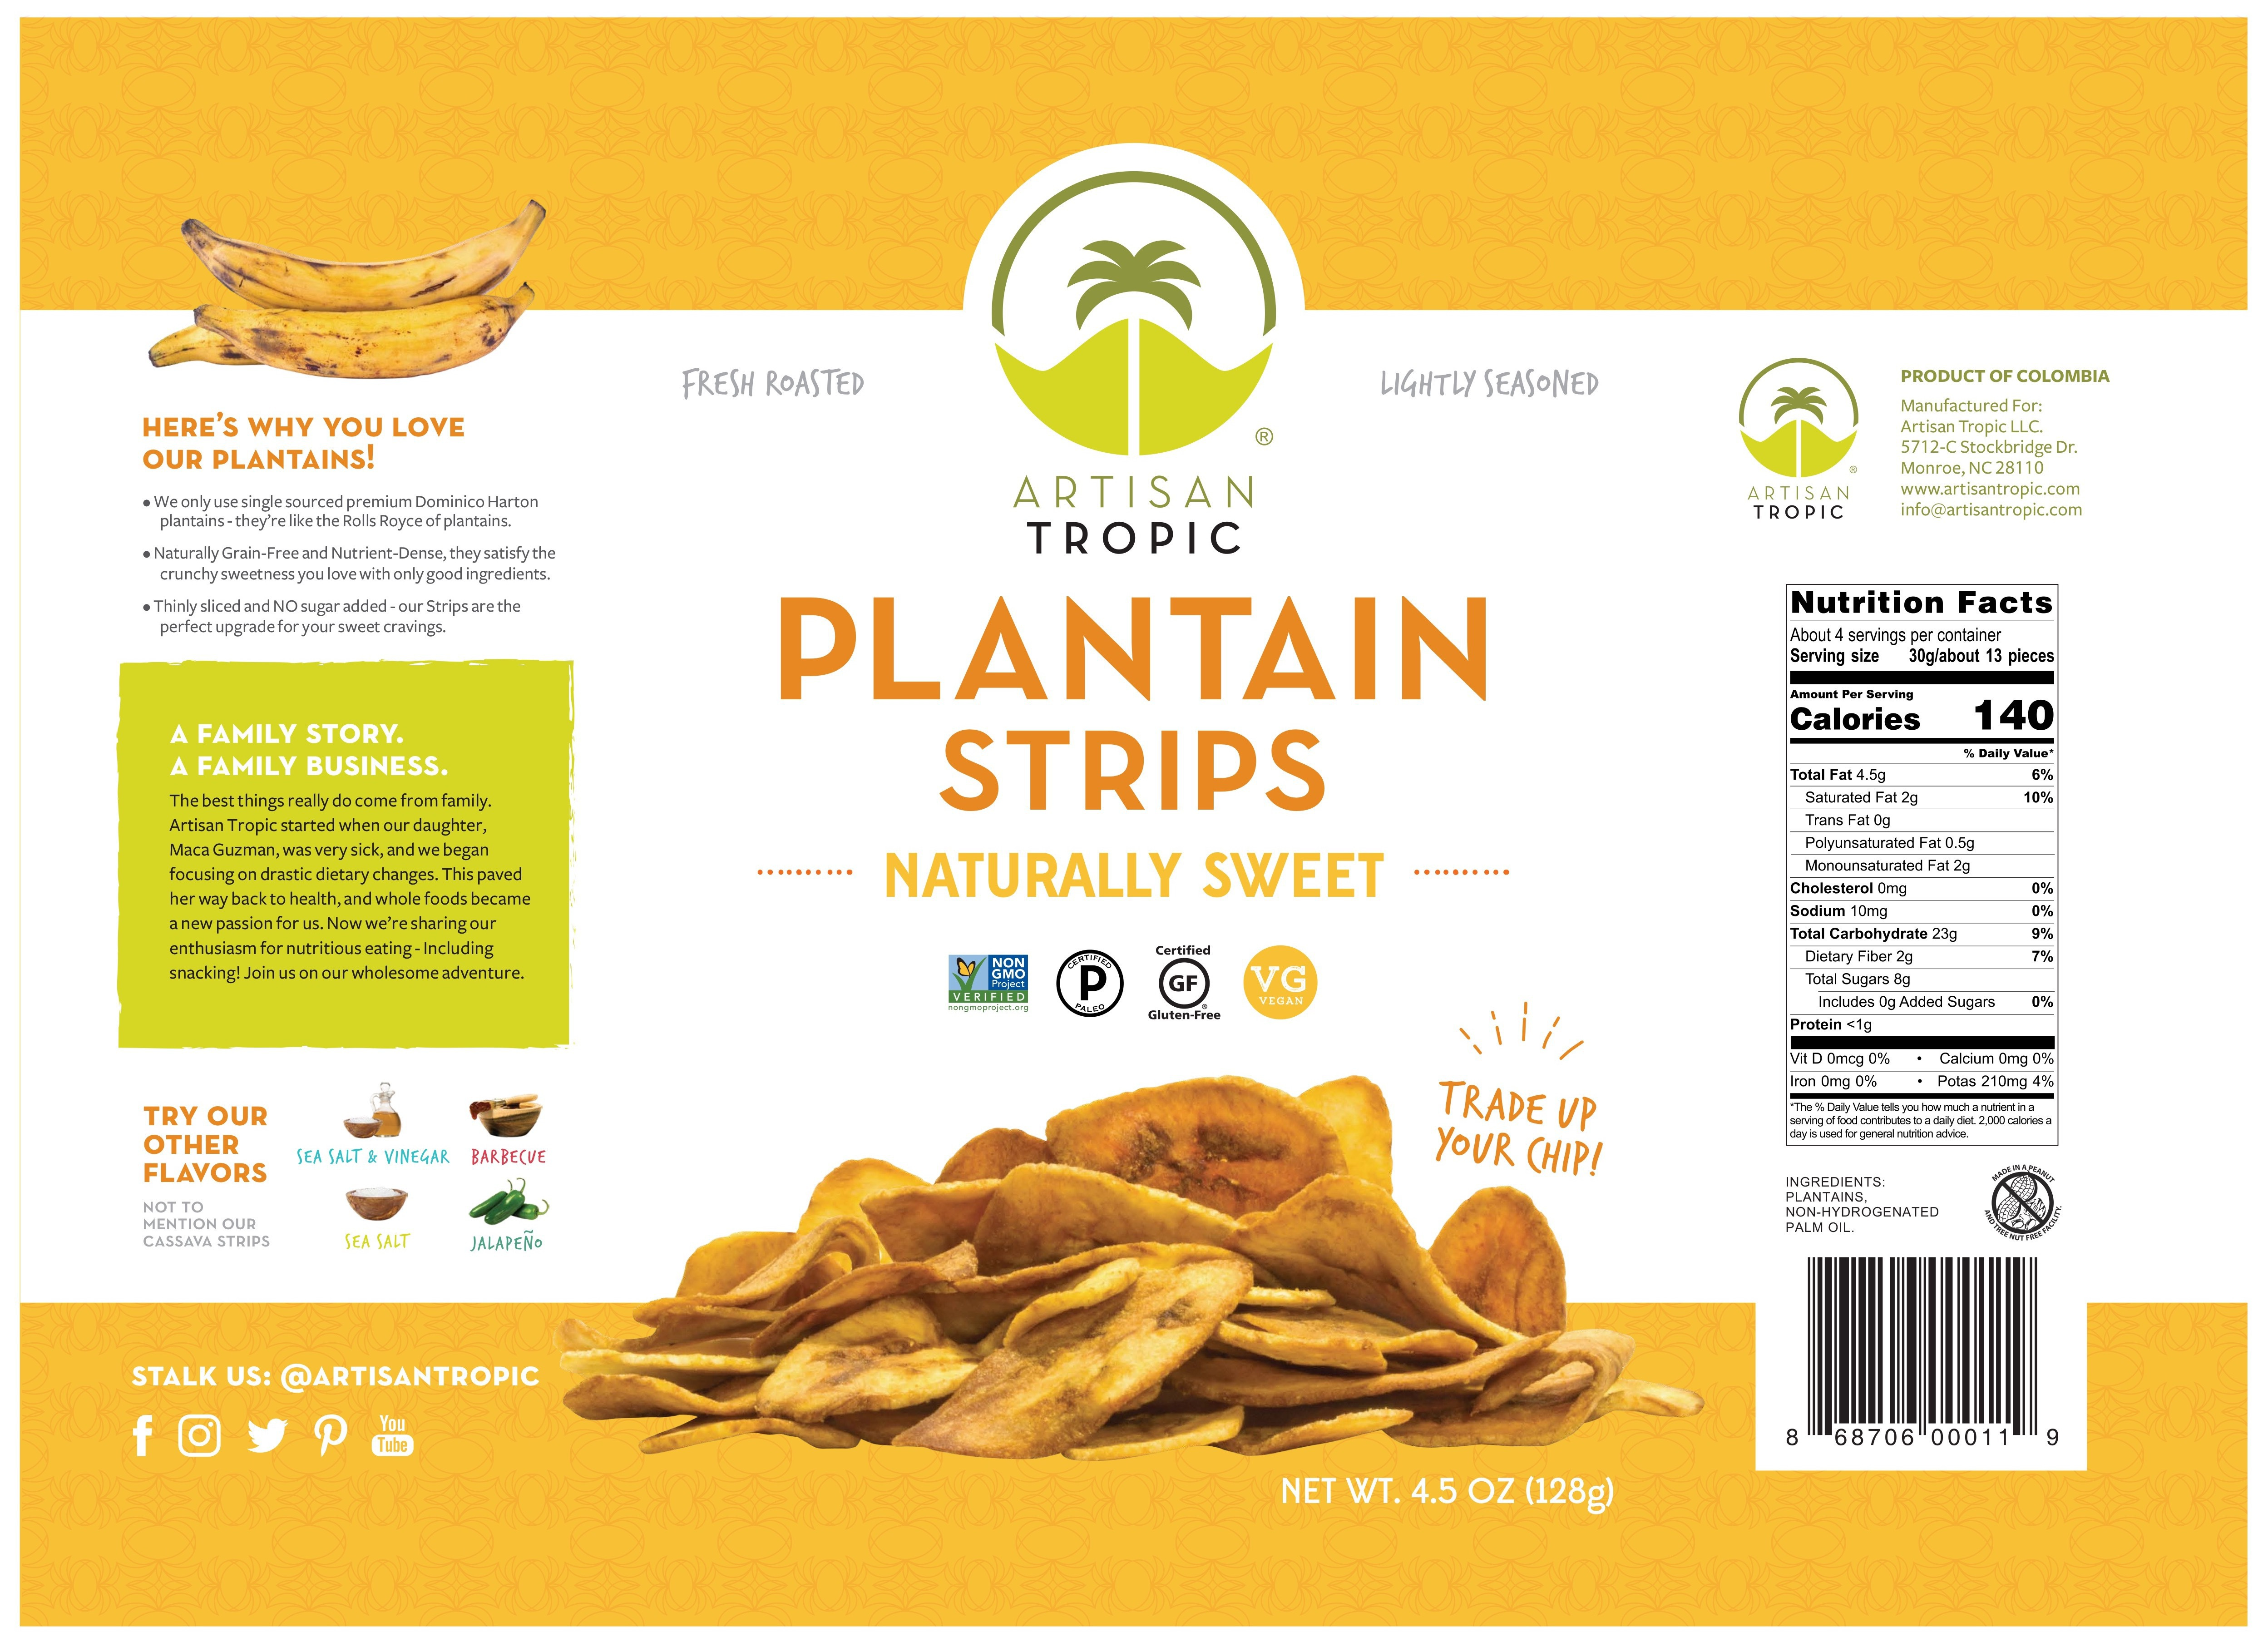 Naturally Sweet Plantain Strips   The Natural Products